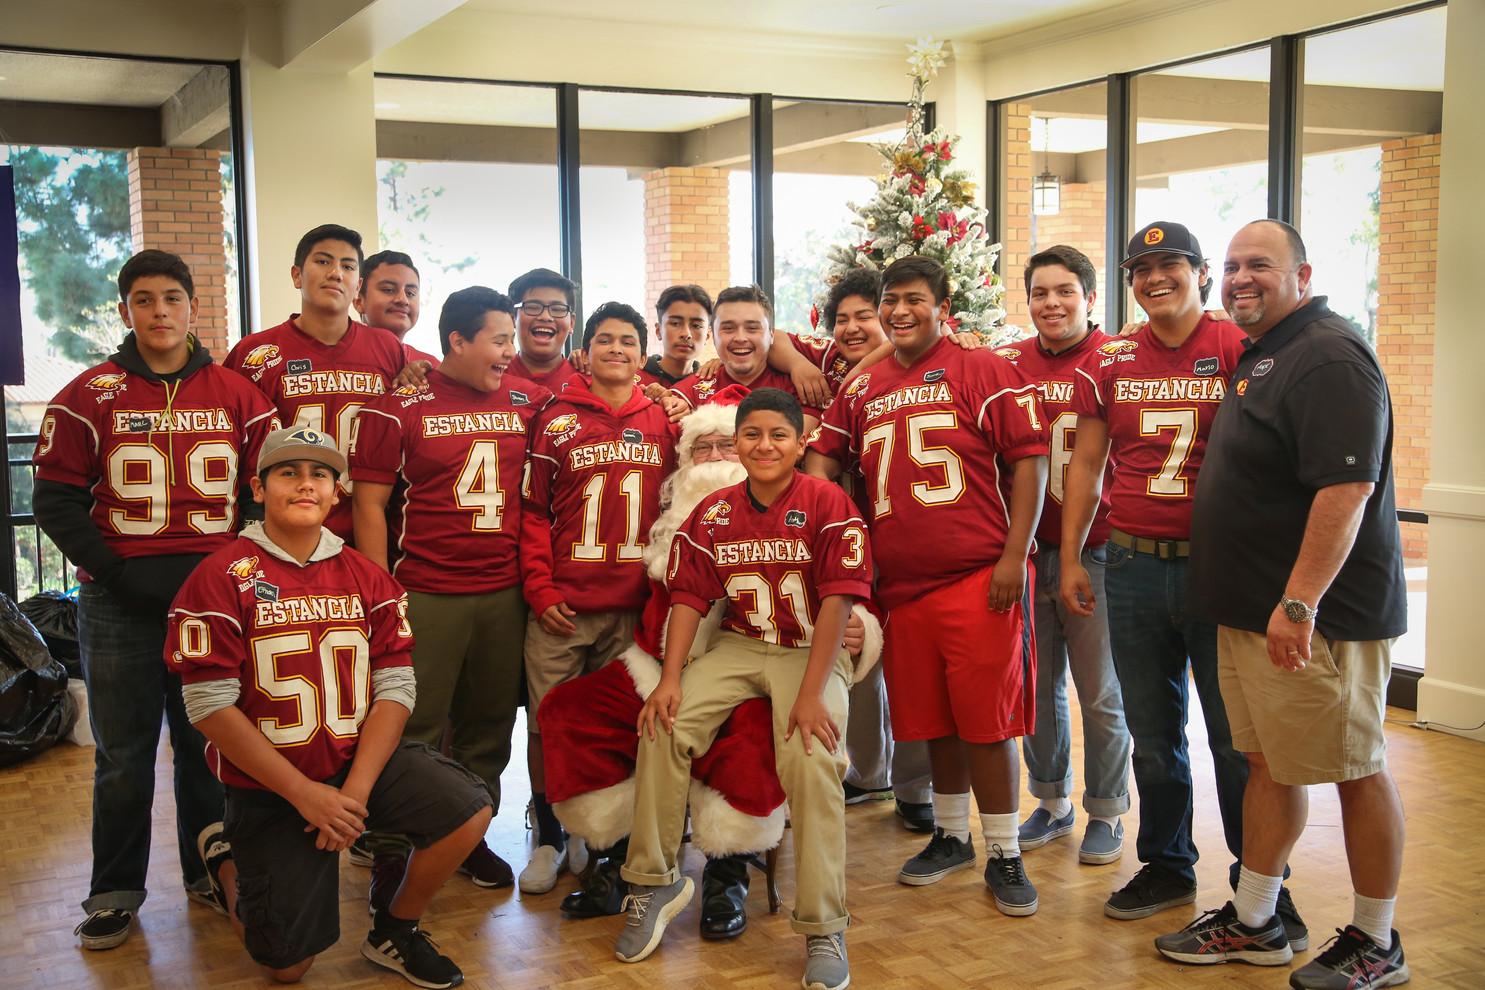 Estancia HS football volunteers and Coach Bargas (R)